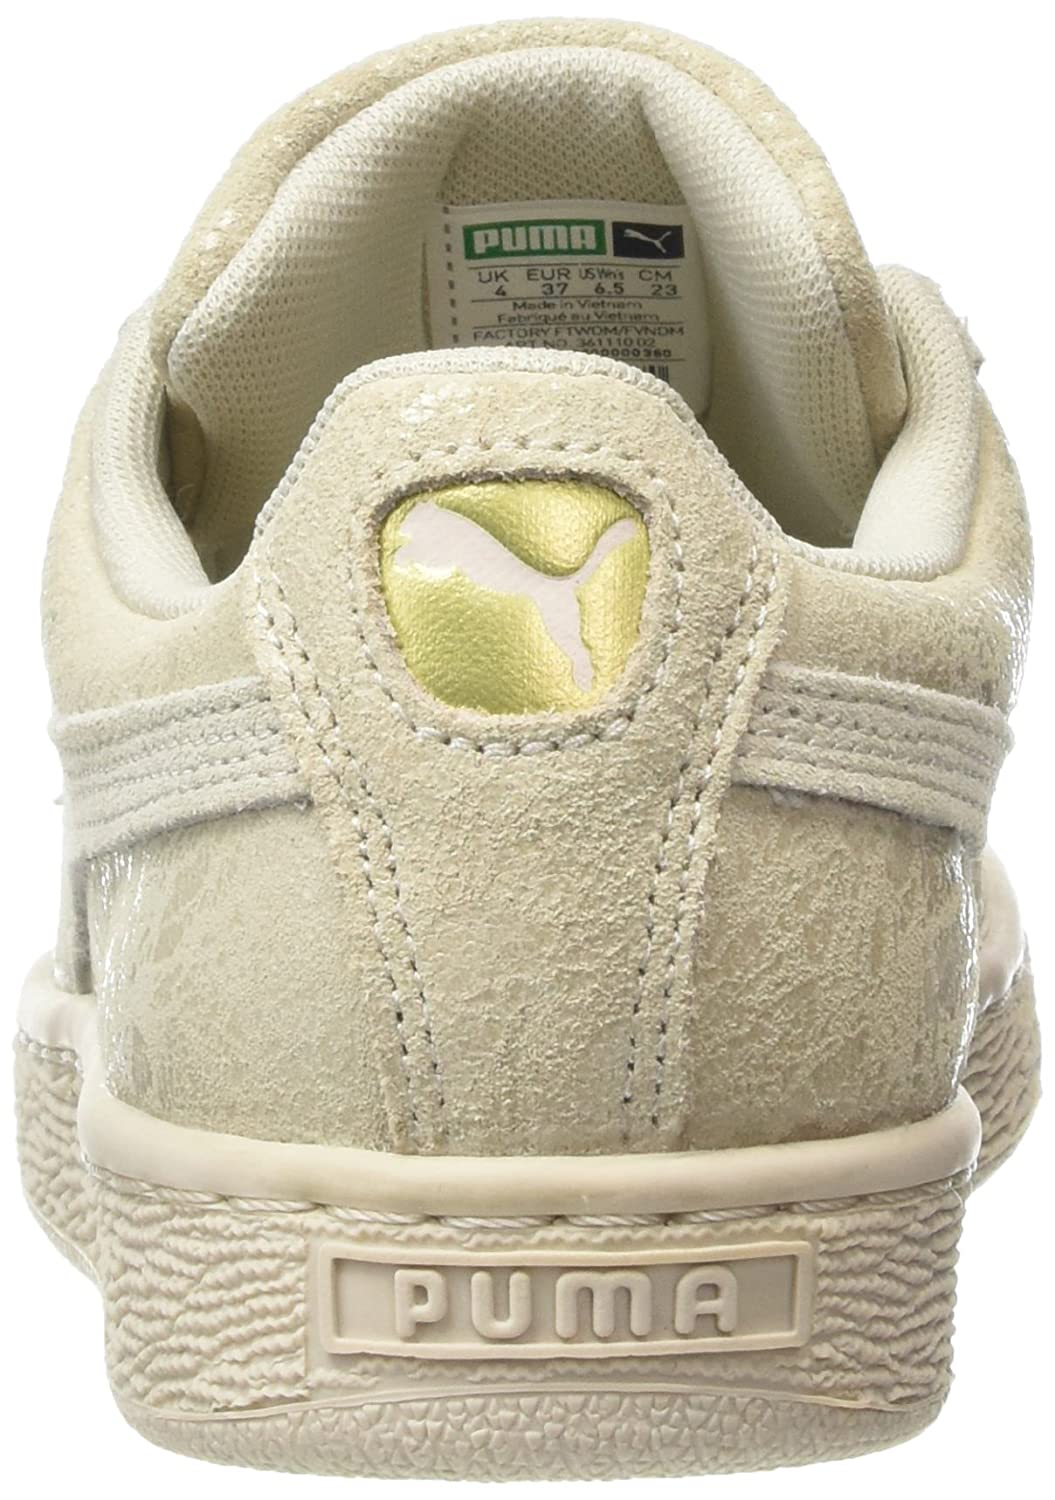 b93032a91709 Puma Women s Suede Remaster Low-Top Sneakers  Amazon.co.uk  Shoes   Bags